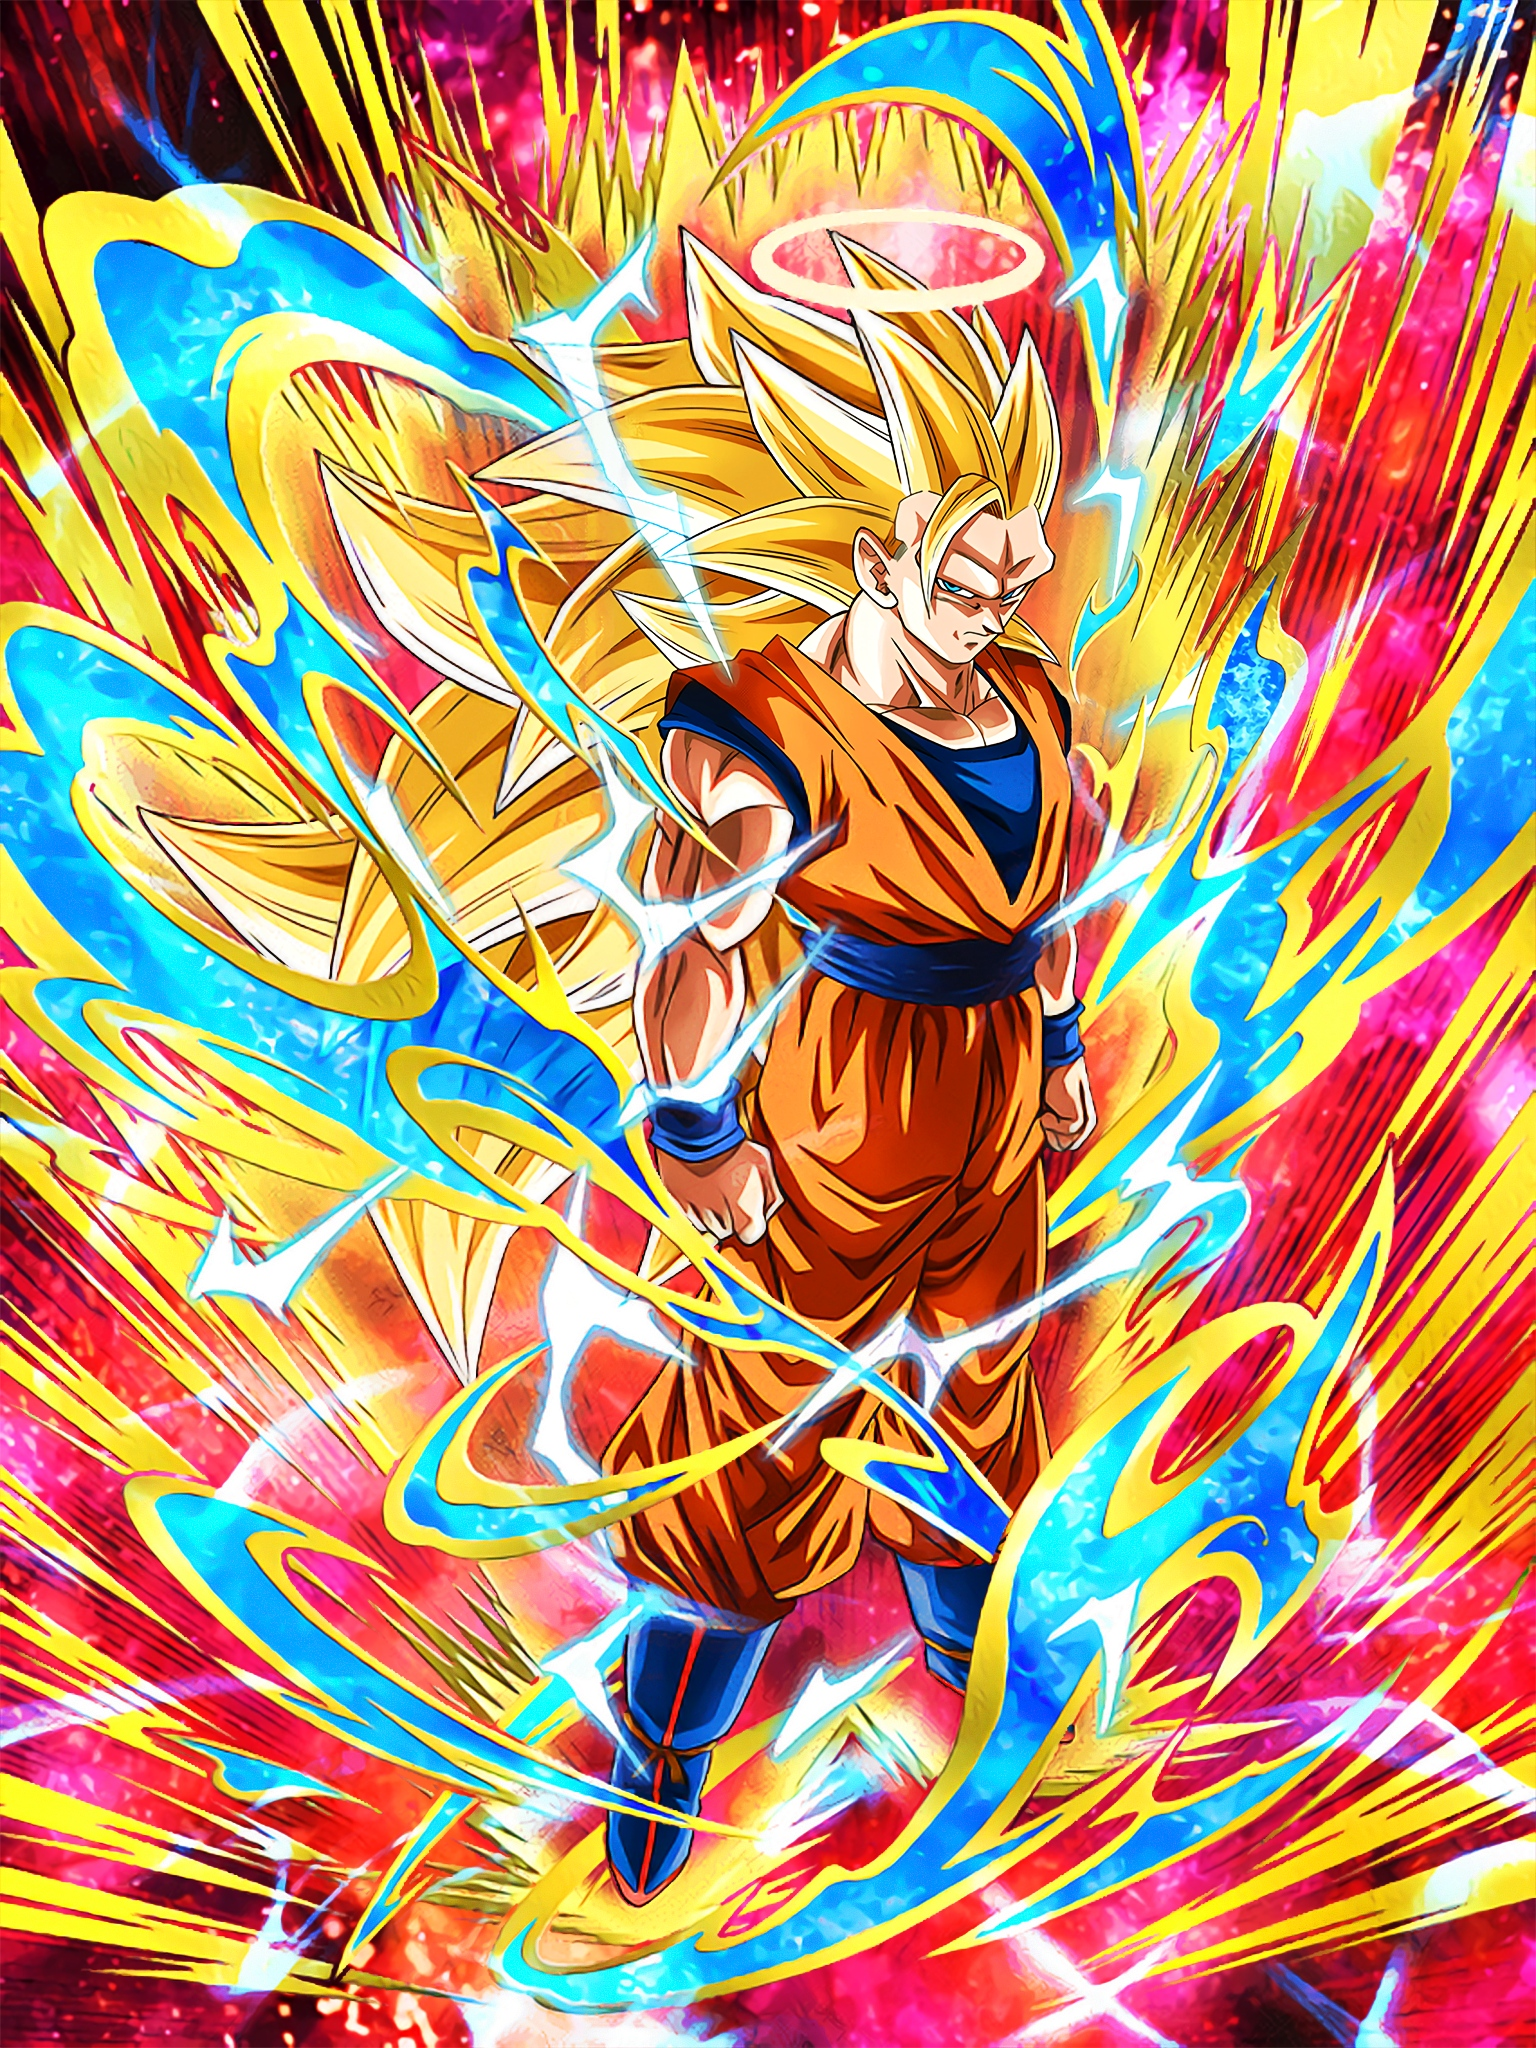 Astounding Transformation Super Saiyan 3 Goku Angel Art (Dragon Ball Z Dokkan Battle).jpg